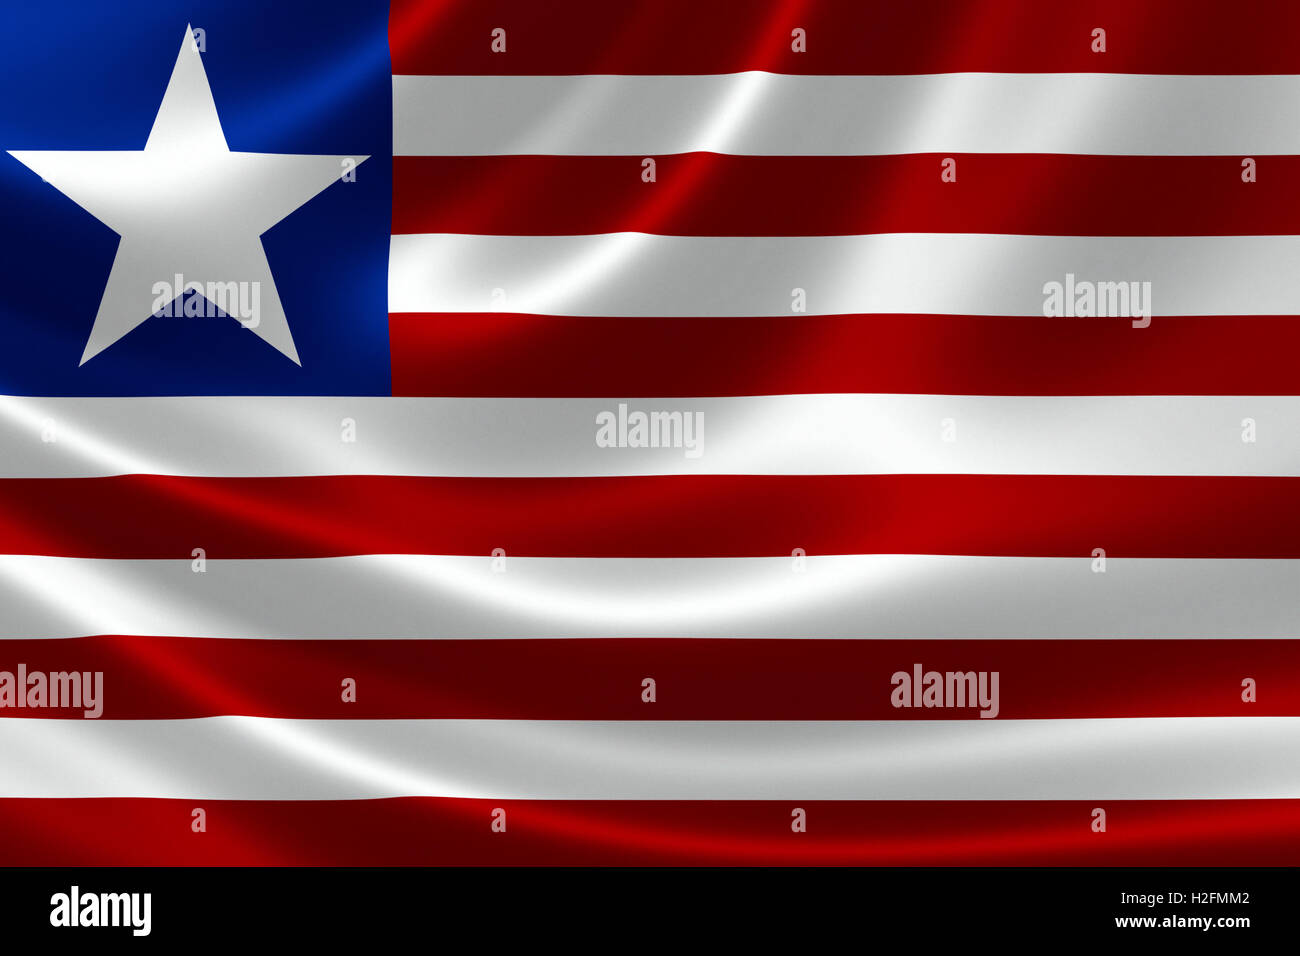 Close-up of the flag of Liberia on satin texture. - Stock Image